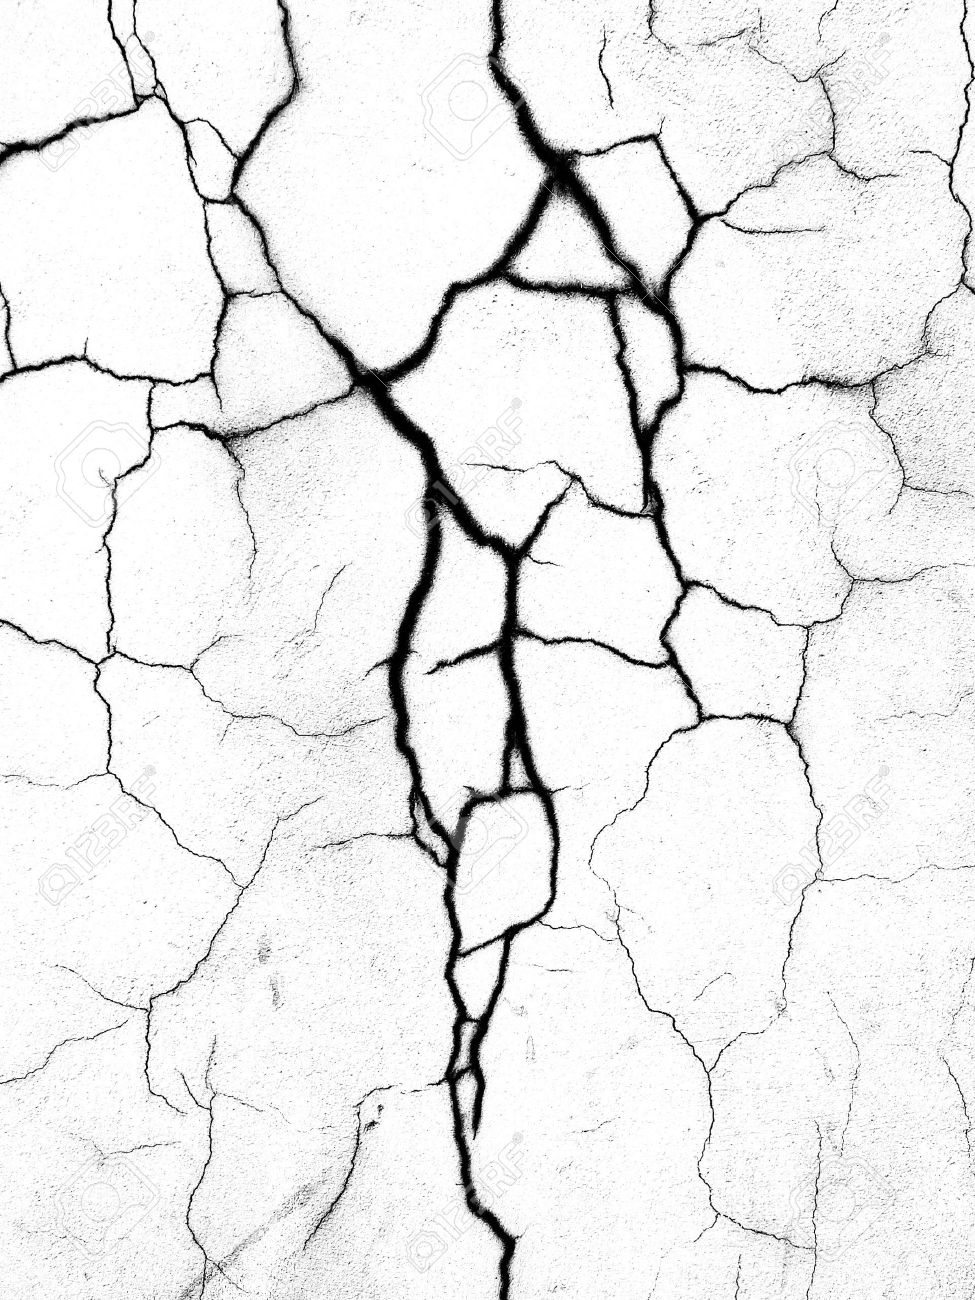 975x1300 The Crack On The Wall Close Up. Black And White. Stock Photo